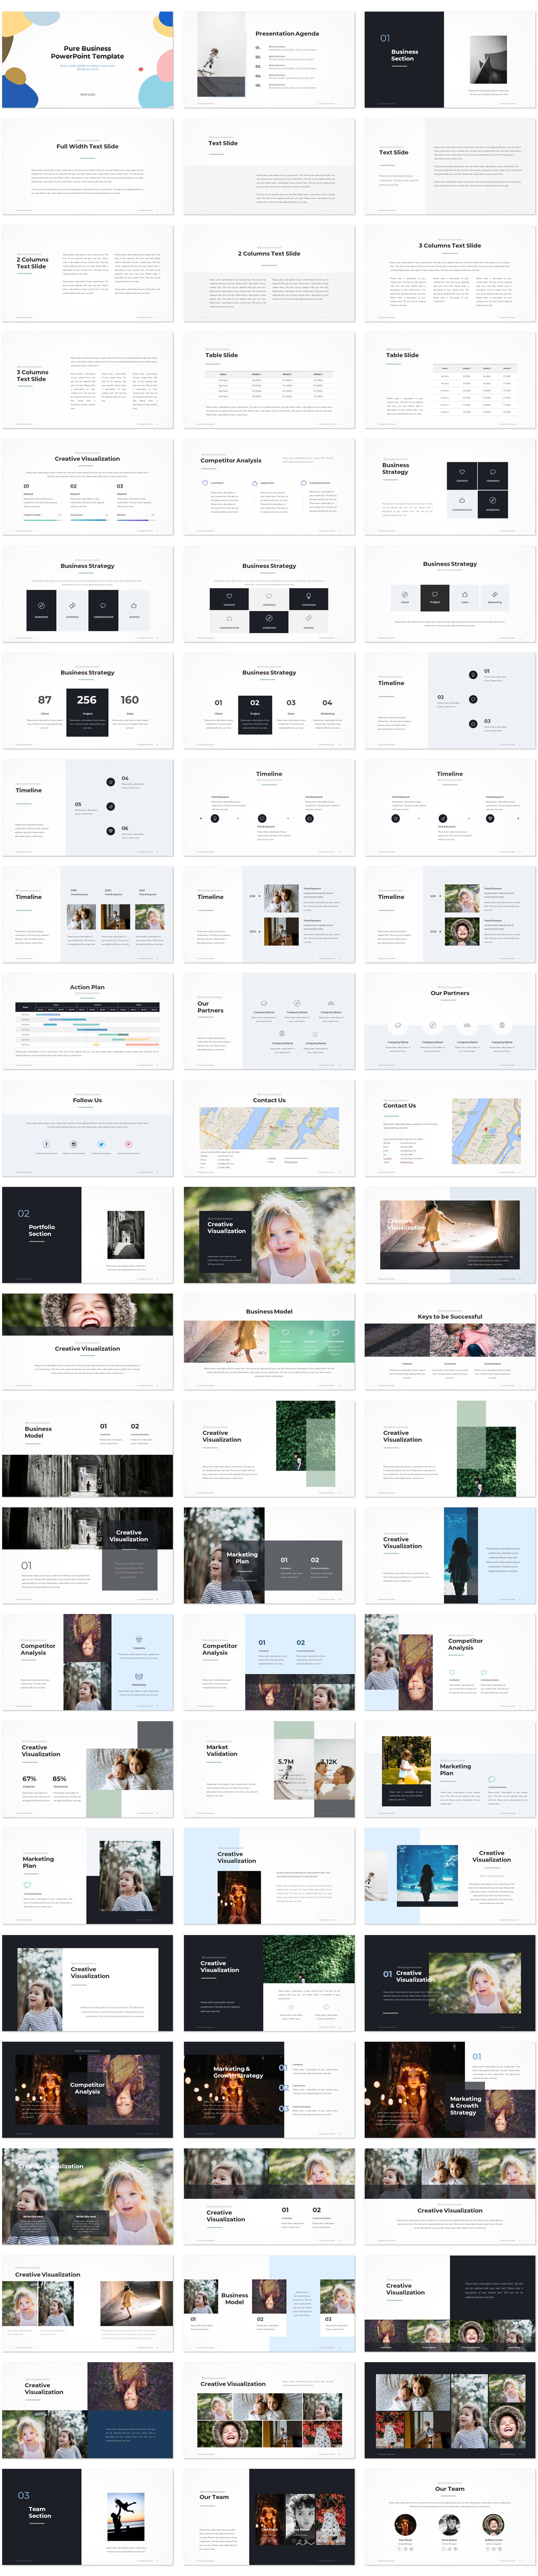 Pure-Business-PowerPoint-Template_02